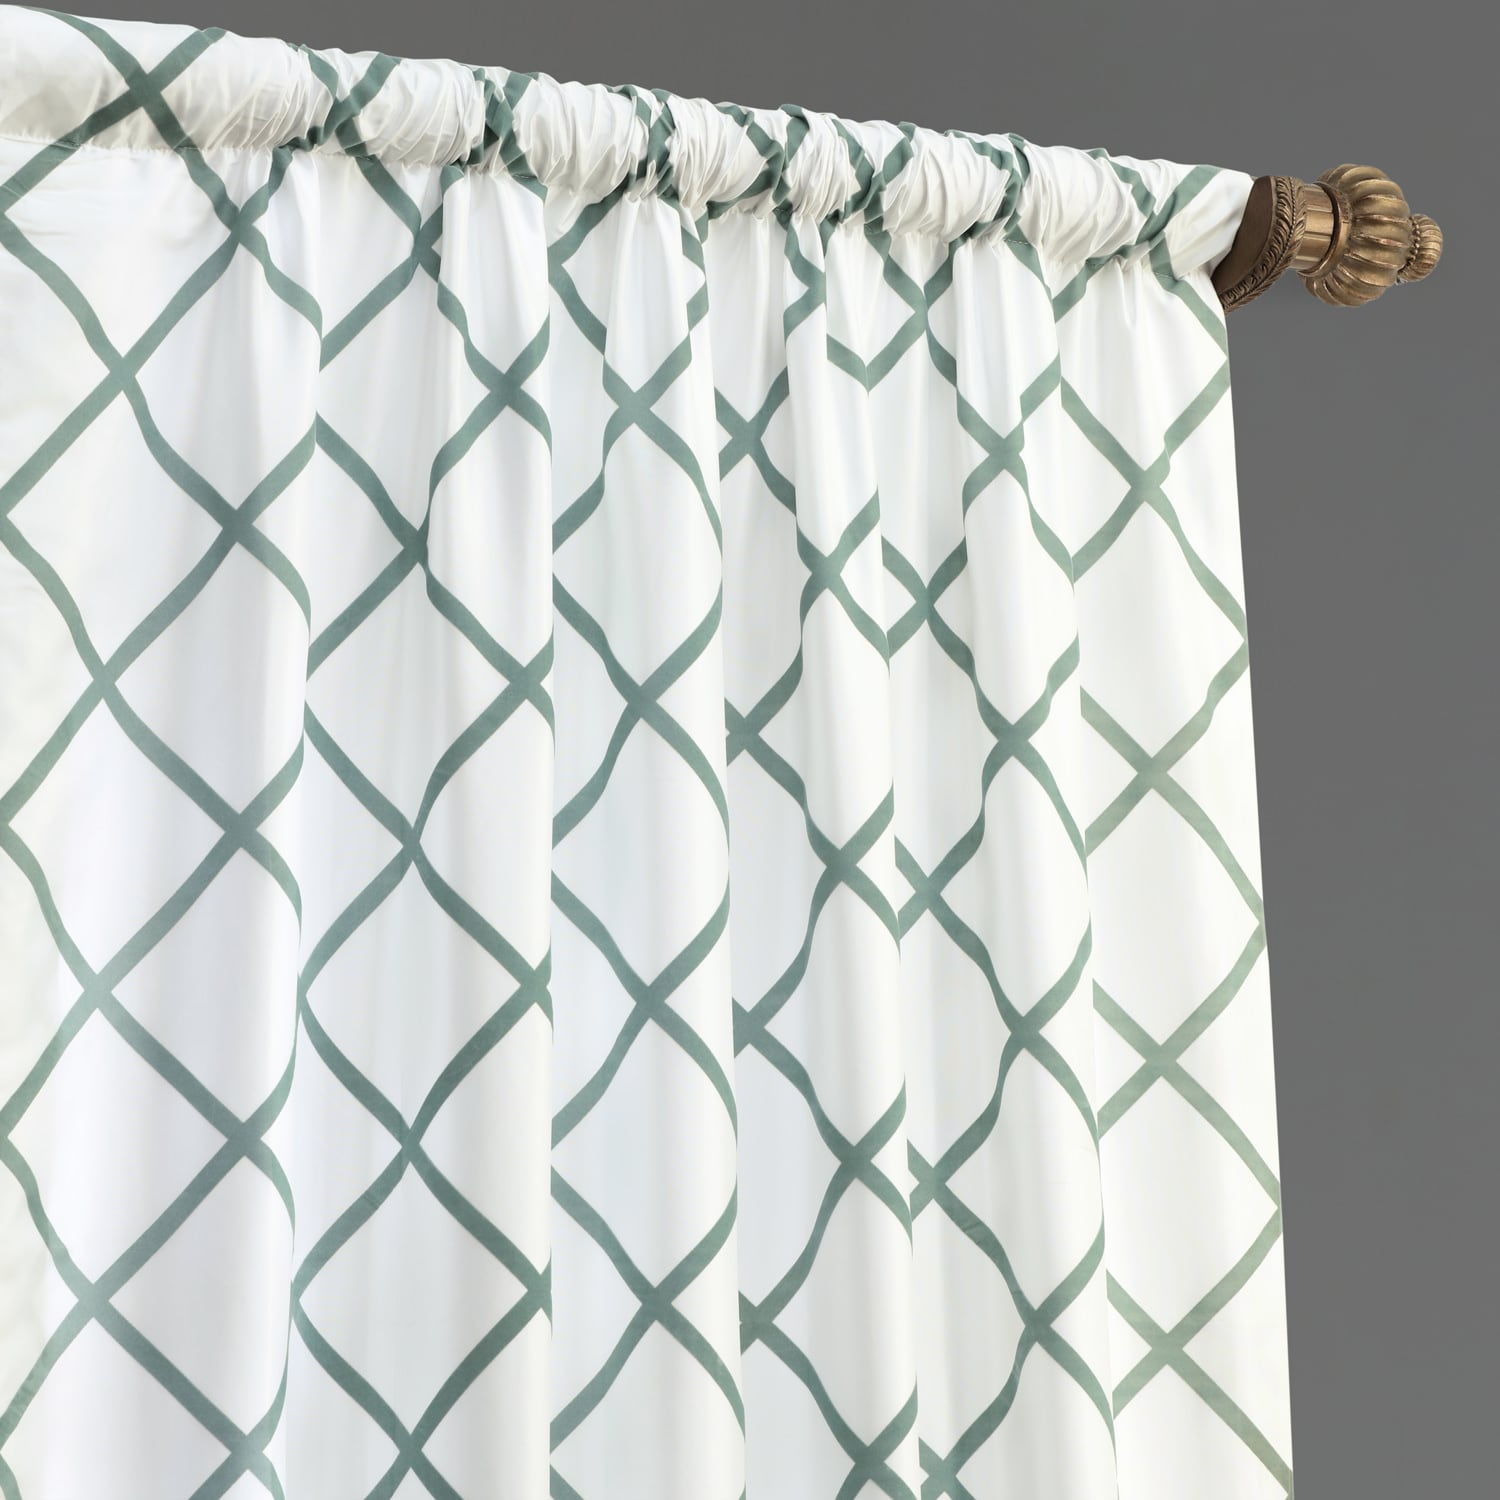 Pavillion White & Green Designer Flocked Curtain